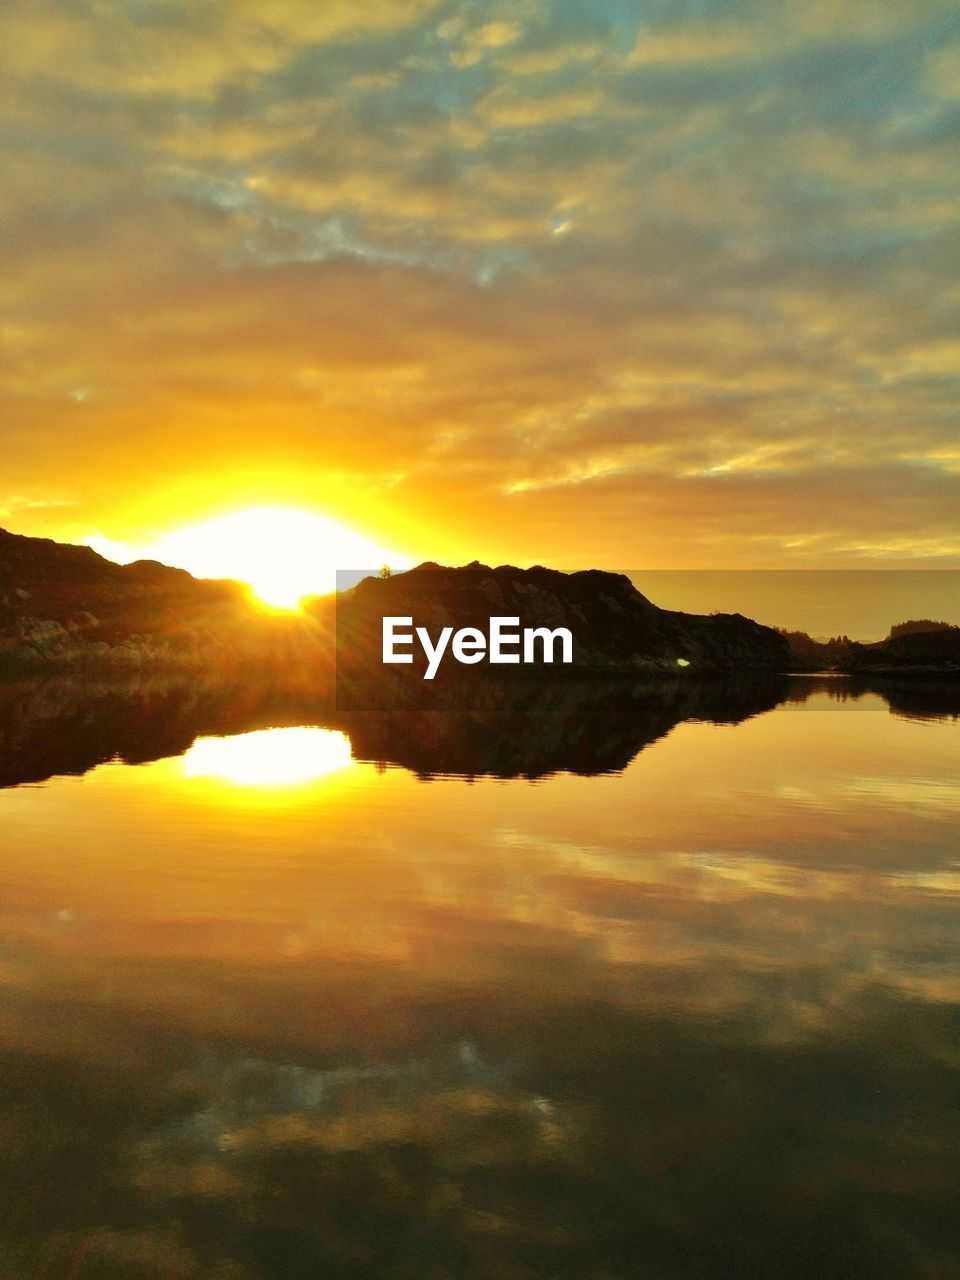 sunset, nature, sky, beauty in nature, orange color, scenics, sun, no people, tranquil scene, tranquility, reflection, water, outdoors, cloud - sky, mountain, yellow, scenery, day